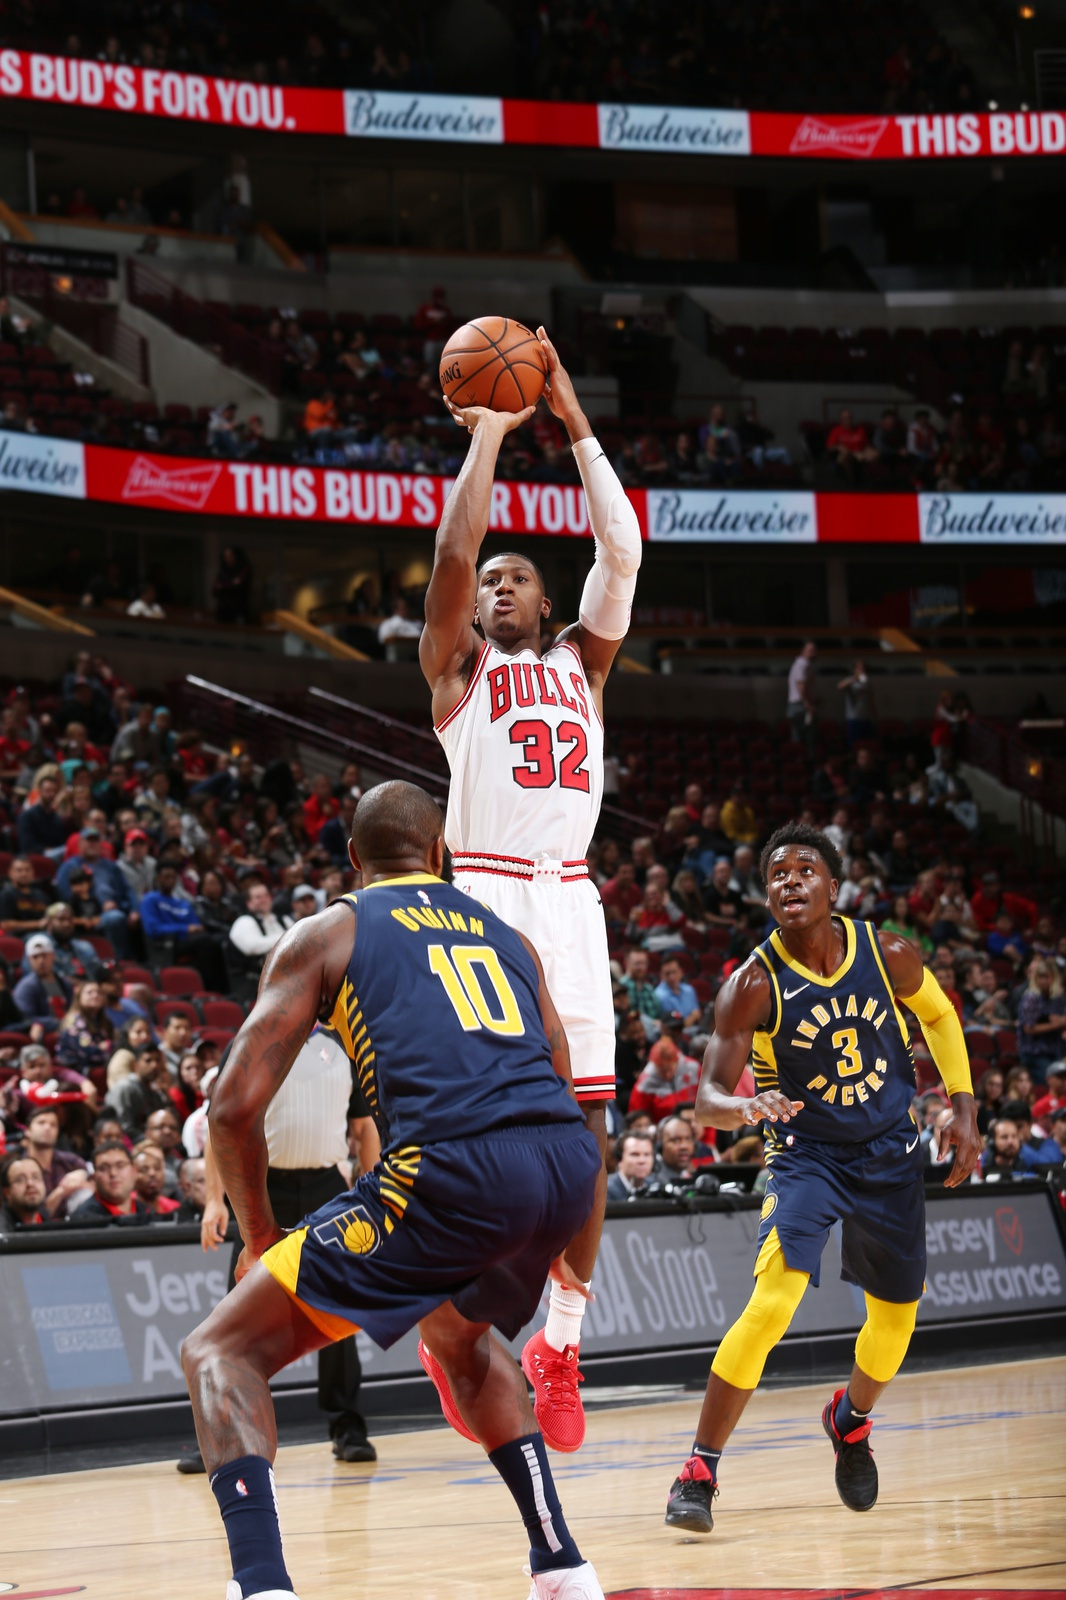 Kris Dunn #32 of the Chicago Bulls shoots the ball against the Indiana Pacers during a pre-season game on October 10, 2018 at the United Center in Chicago, Illinois.